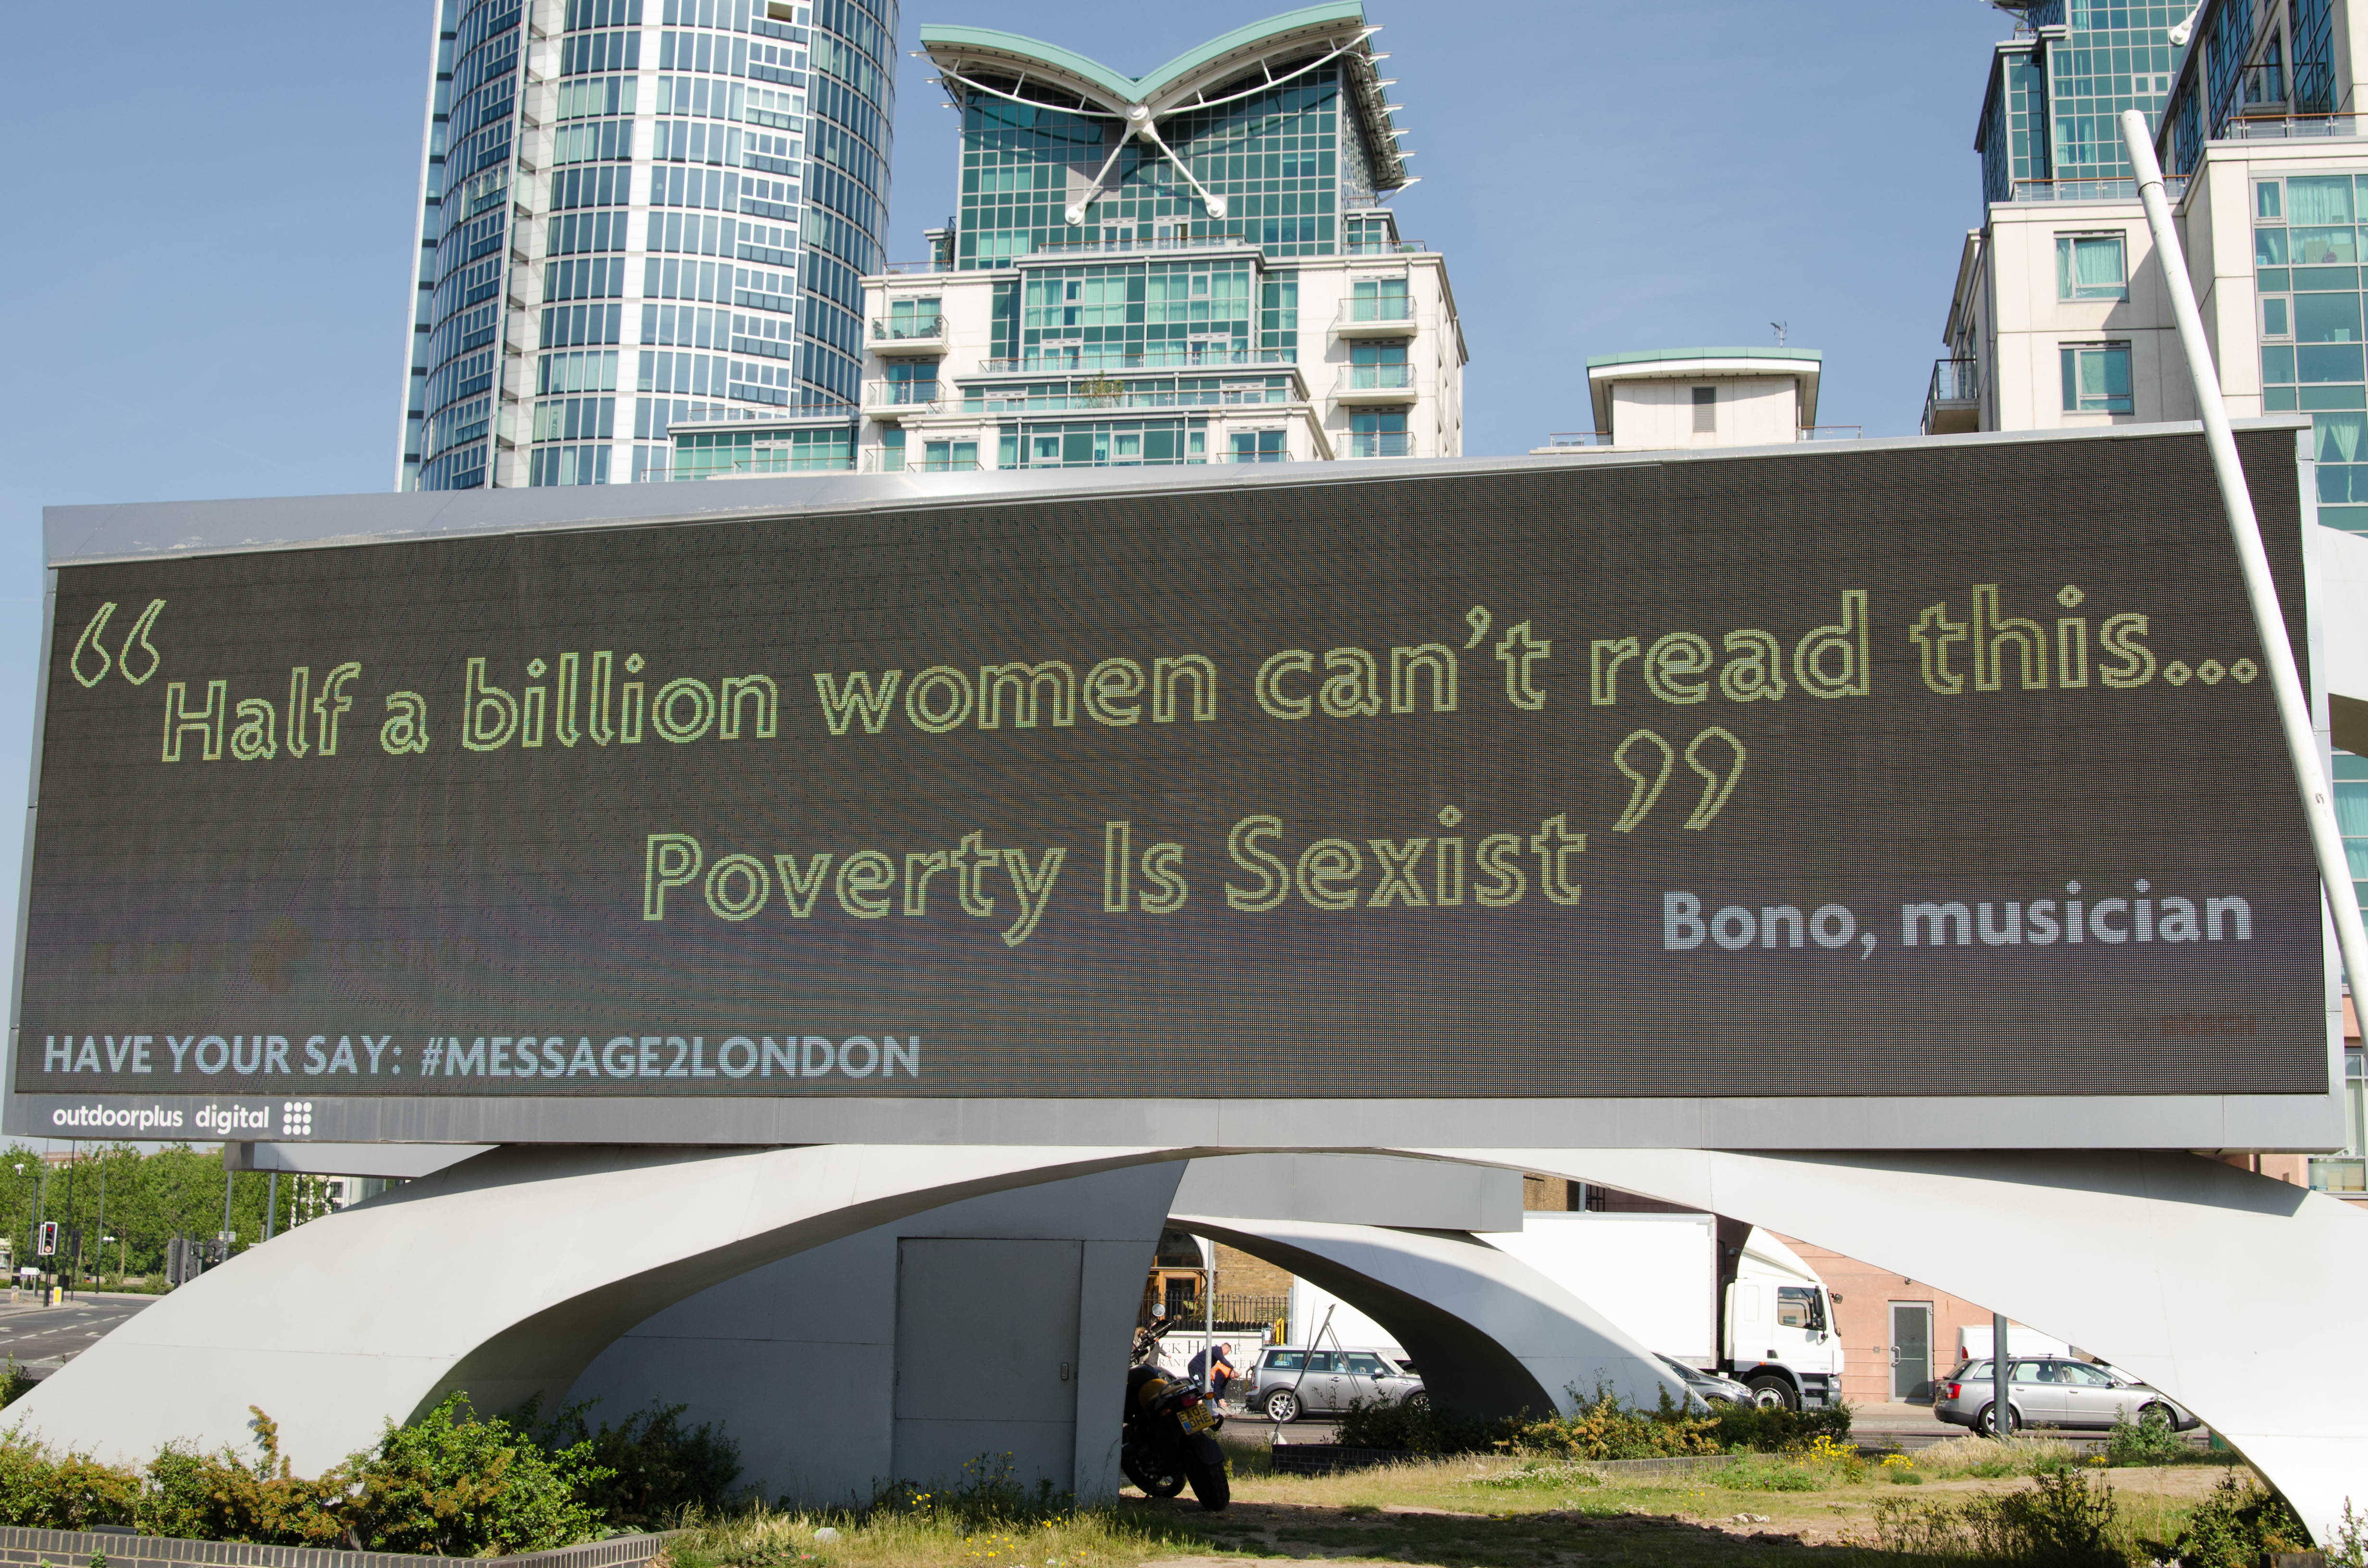 Bono's #message2london: Poverty is Sexist